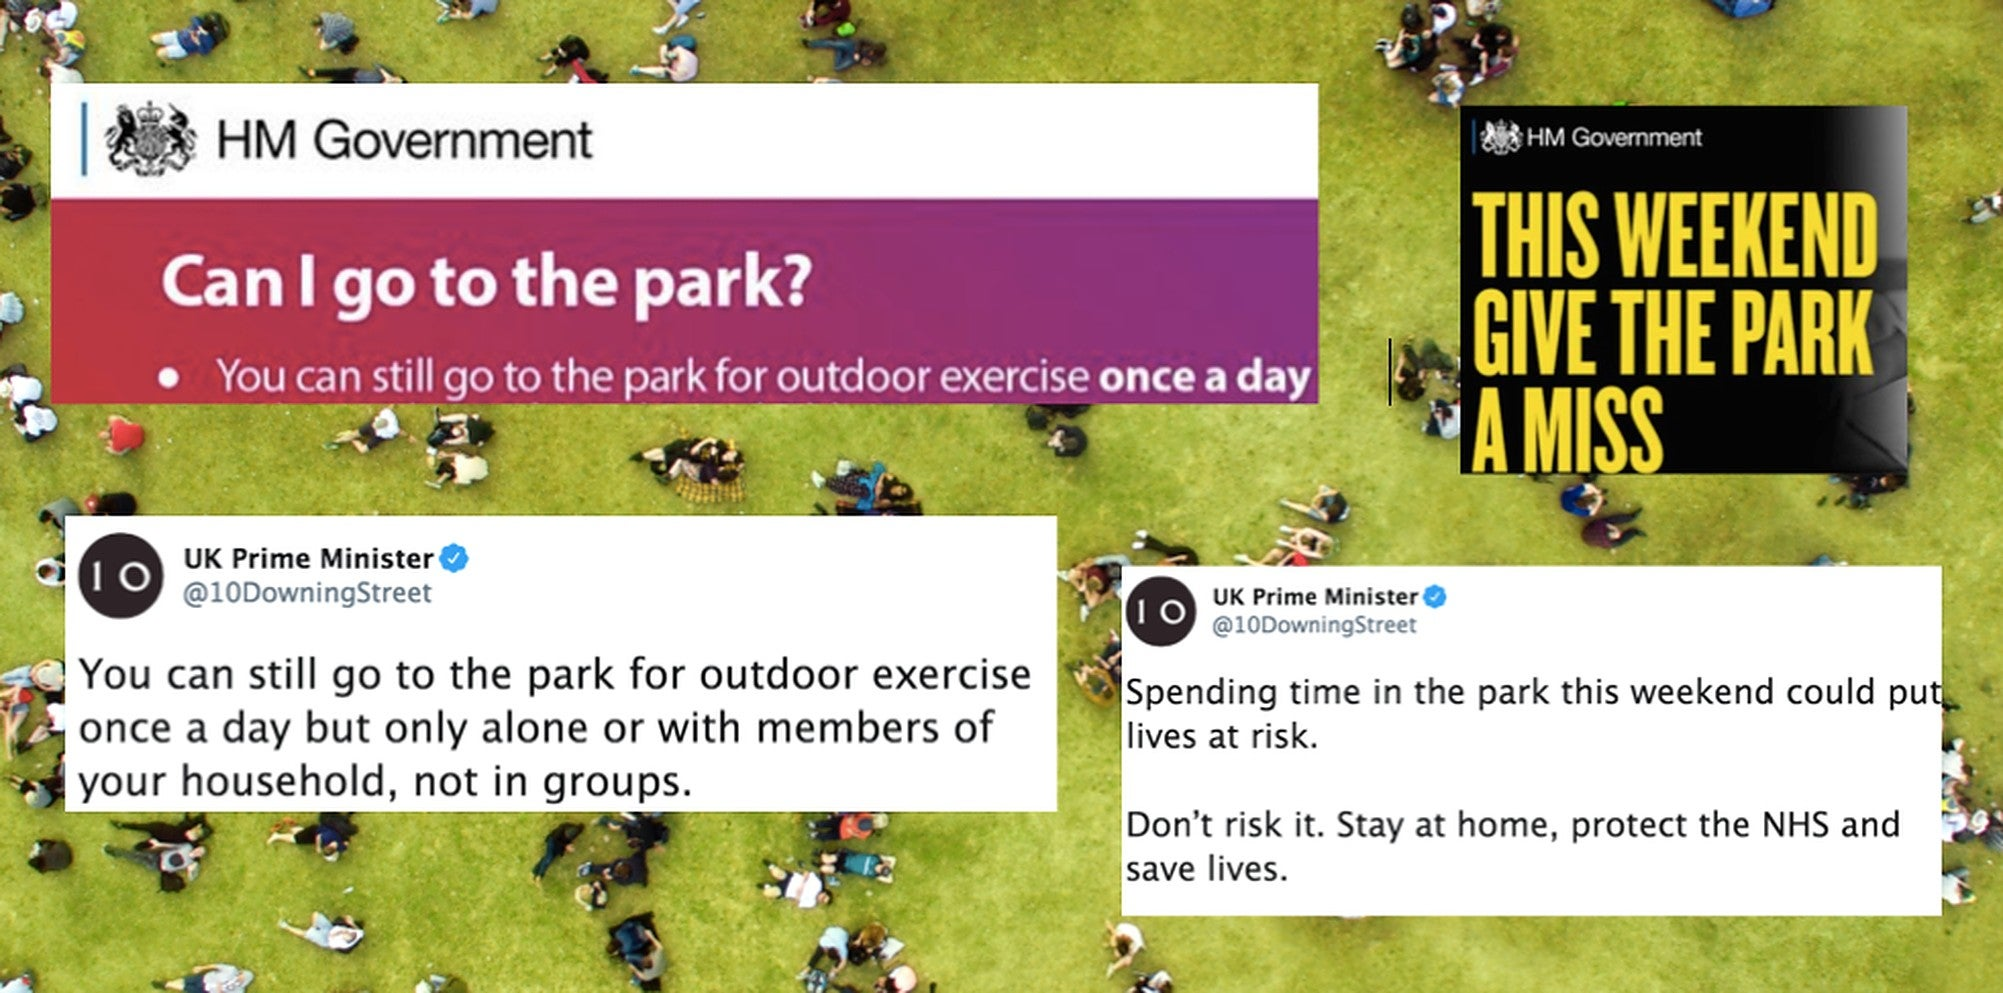 Don't blame people for sunbathing in parks, blame the government for these 'conflicting' messages